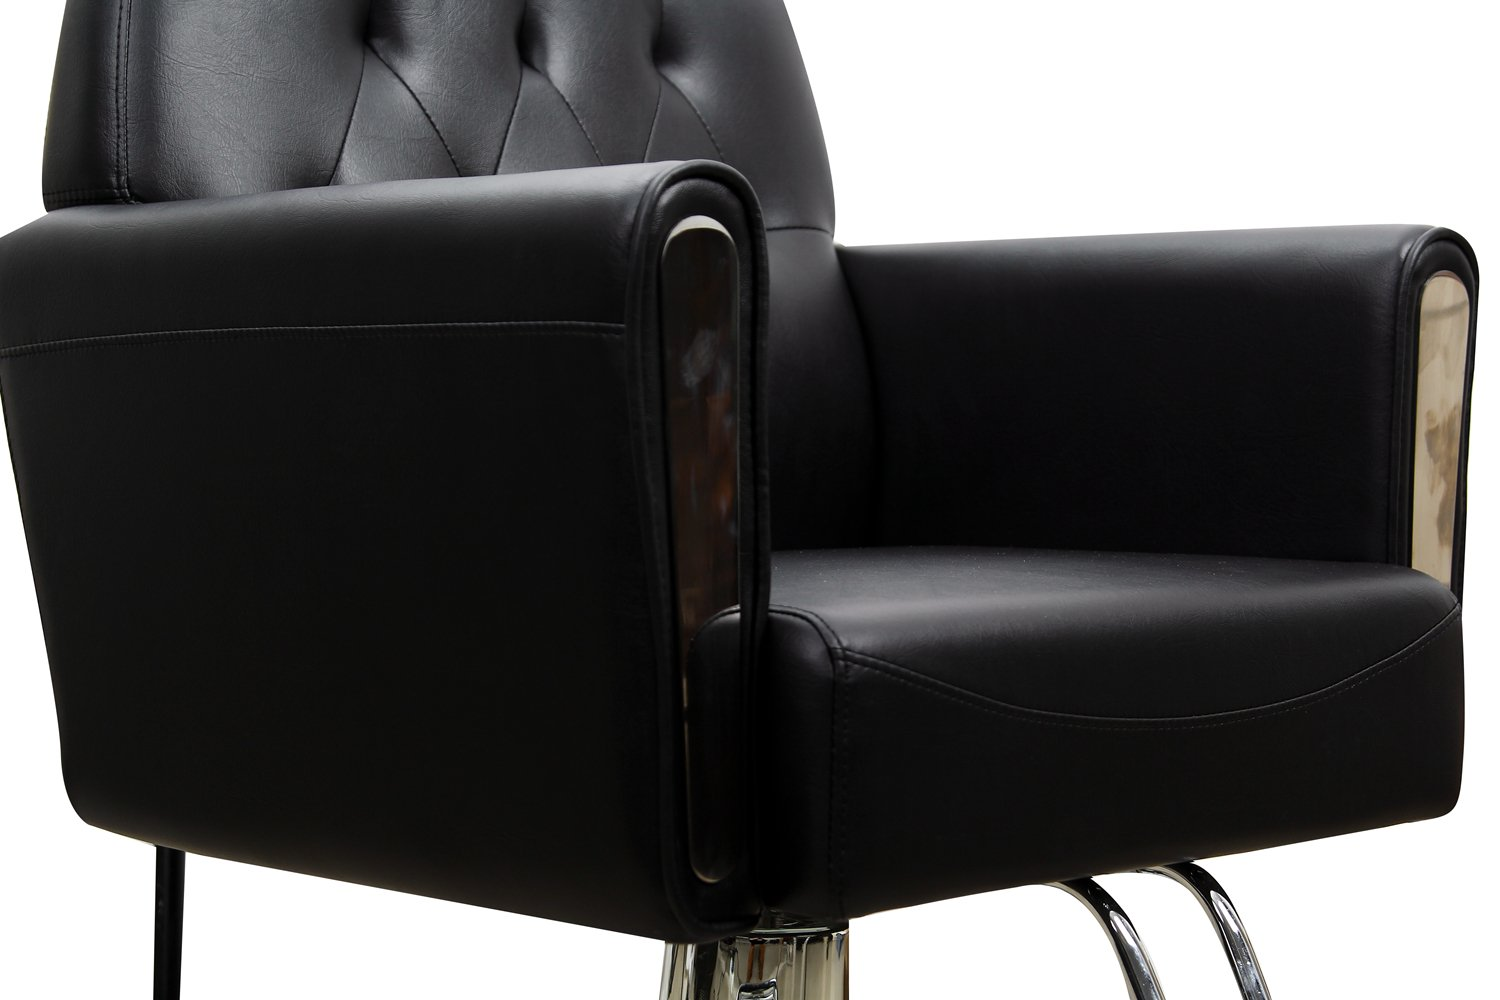 ShengYu Hydraulic Barber Chair Styling Salon Work Station Chair by Shengyu (Image #6)